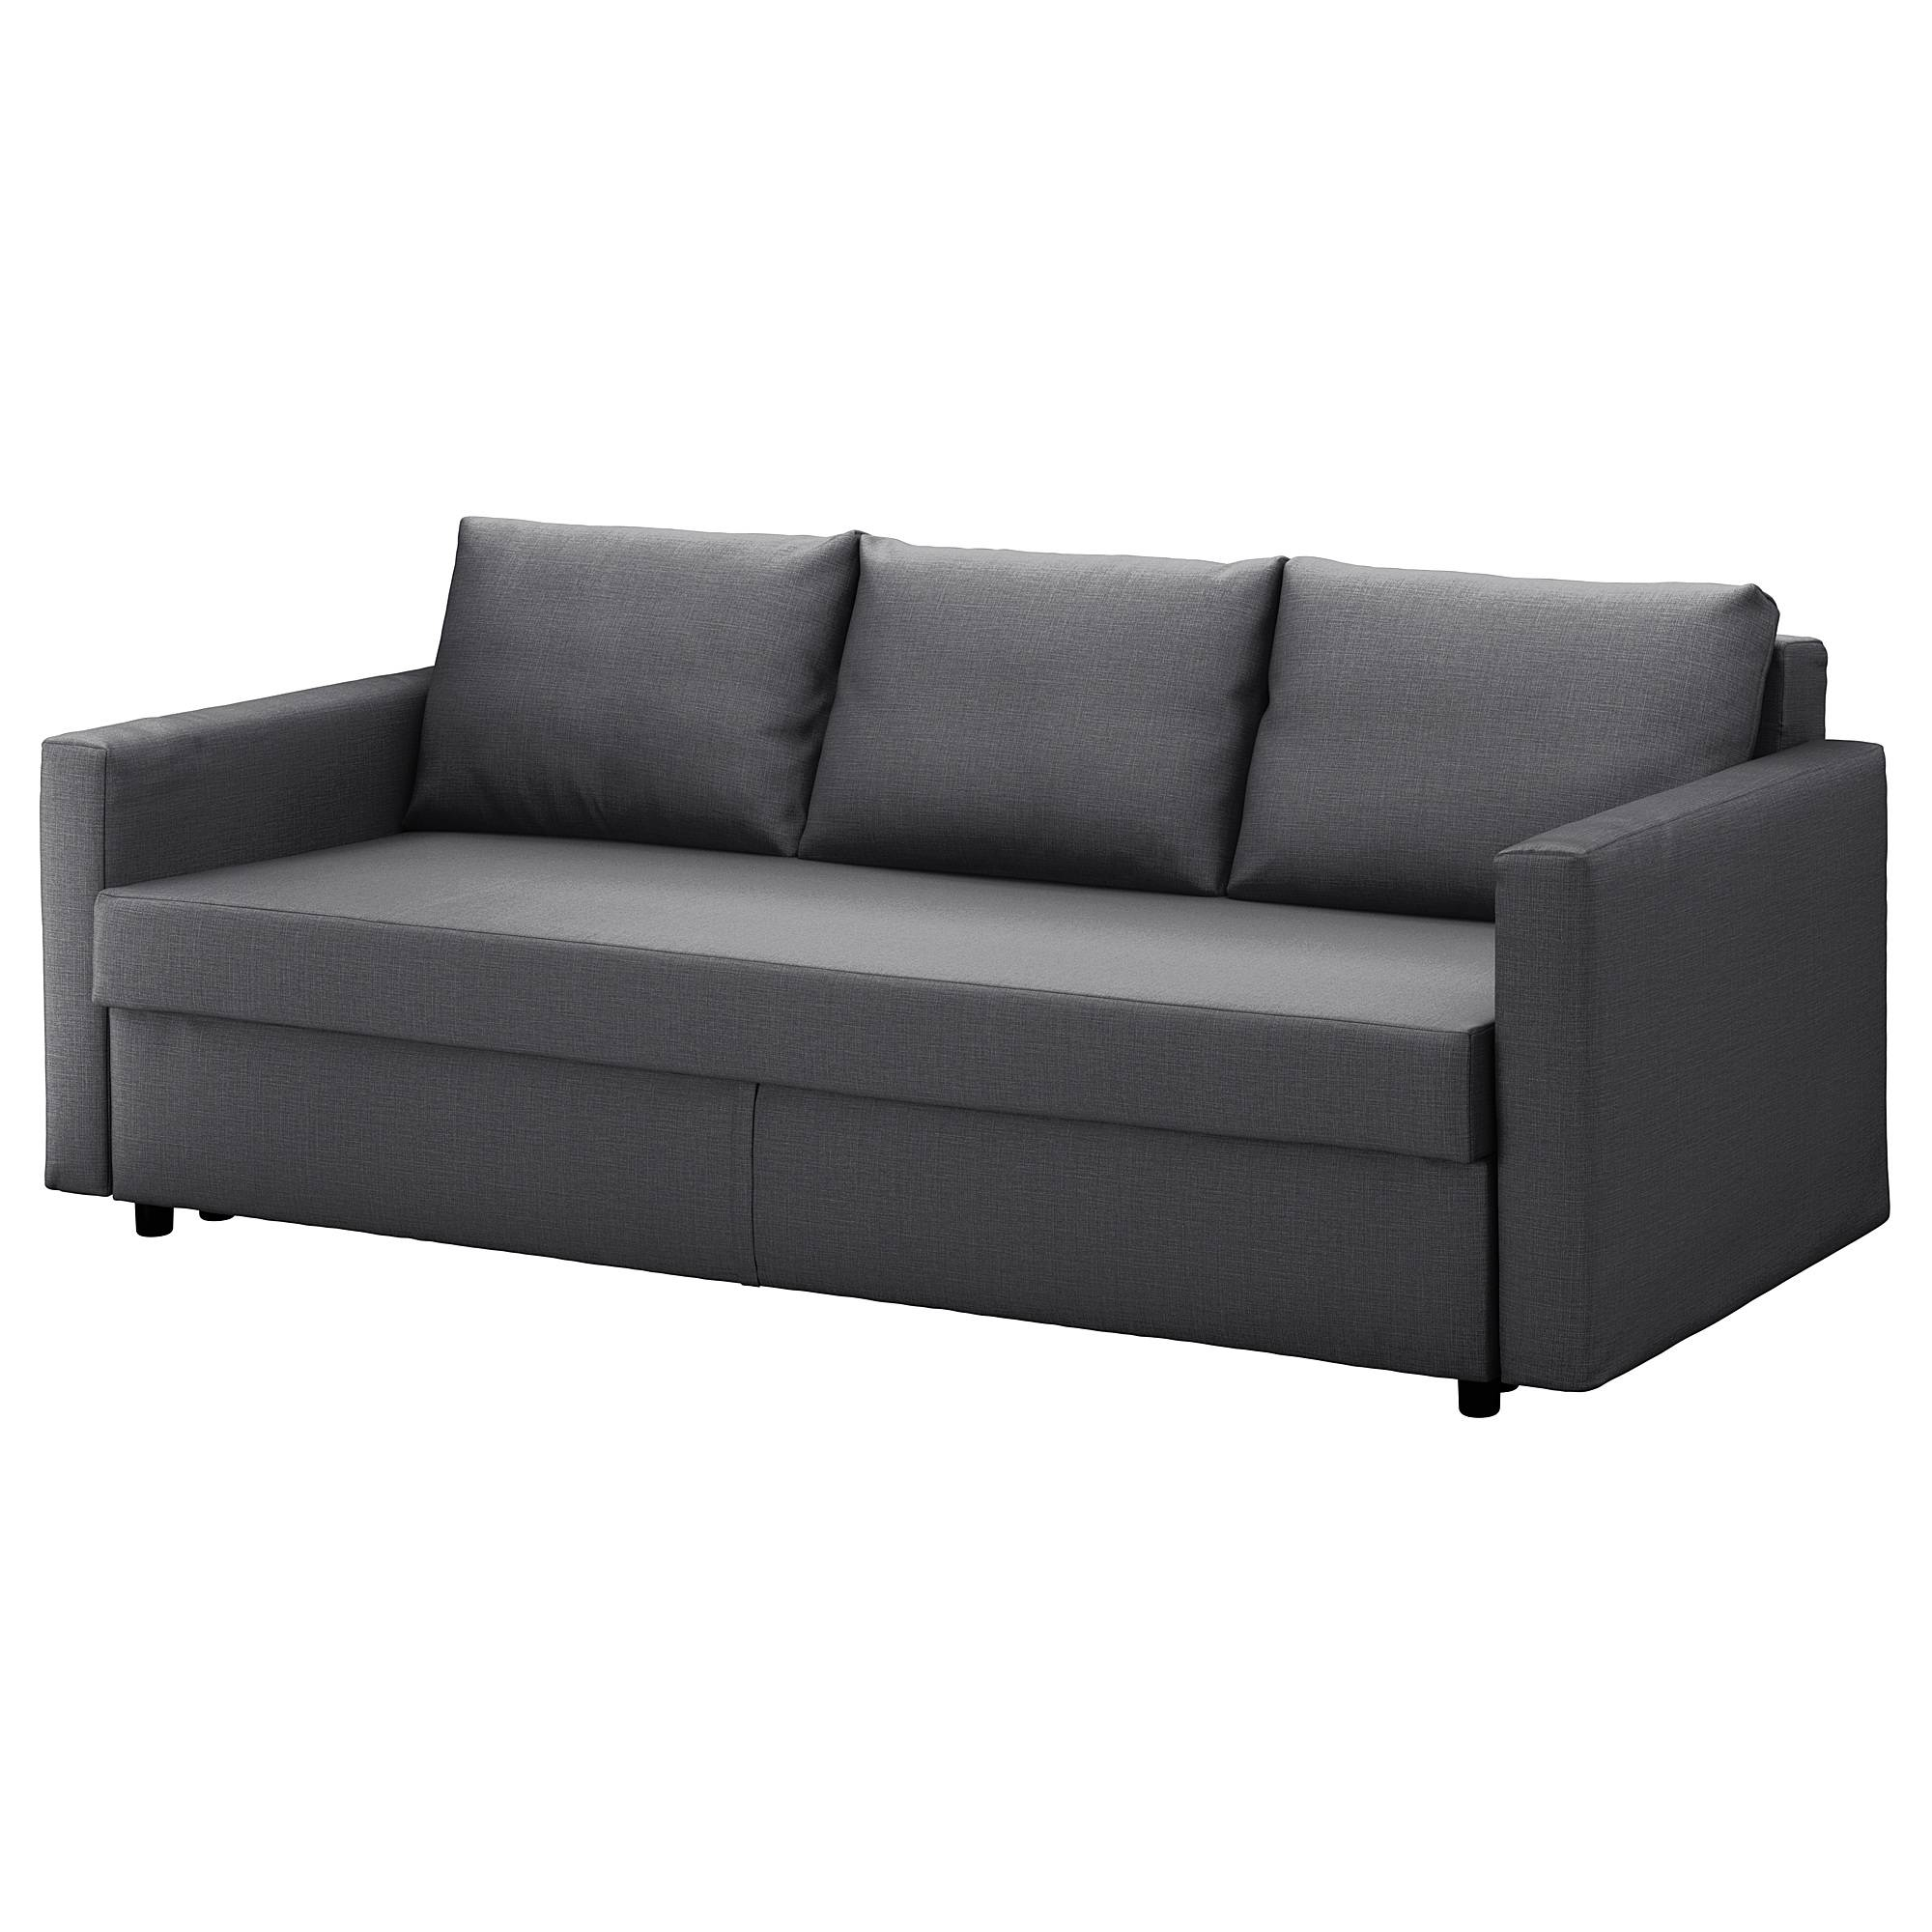 Friheten Sofa Bed – Skiftebo Dark Gray – Ikea Throughout Sofa Beds (View 6 of 15)